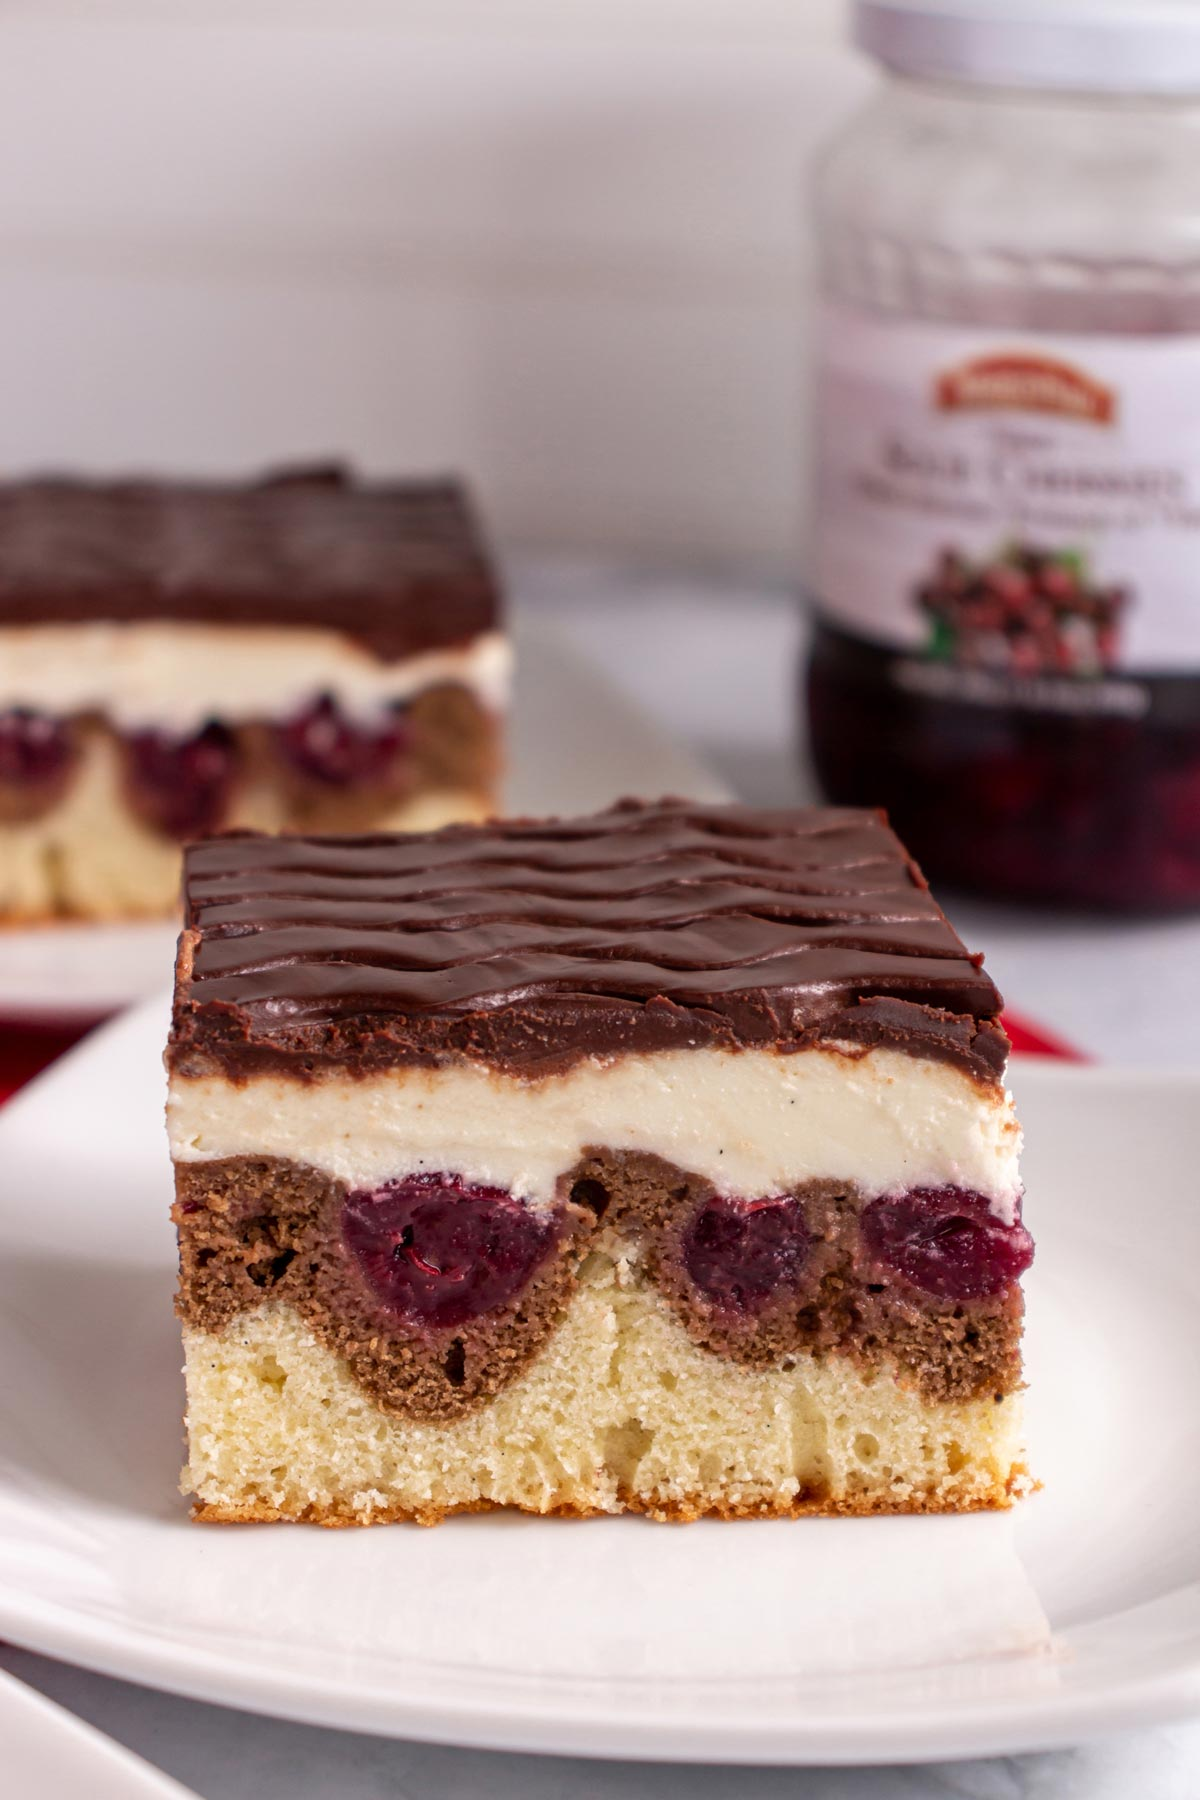 Closeup of a square slice of Danube wave cake with cream and chocolate on top.